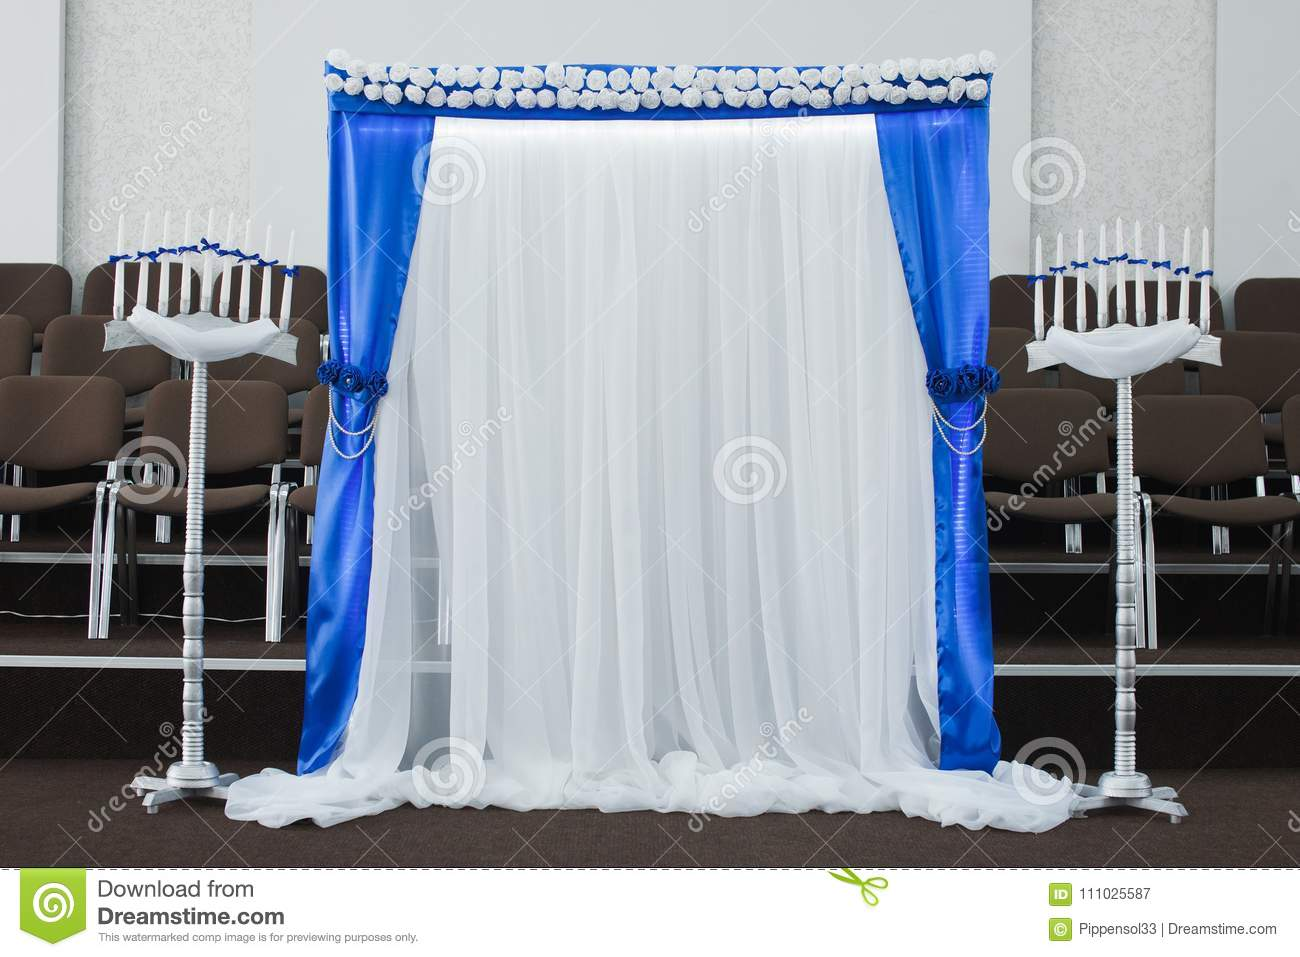 Wedding Decoration In A Church Stock Image - Image of ceremony ...